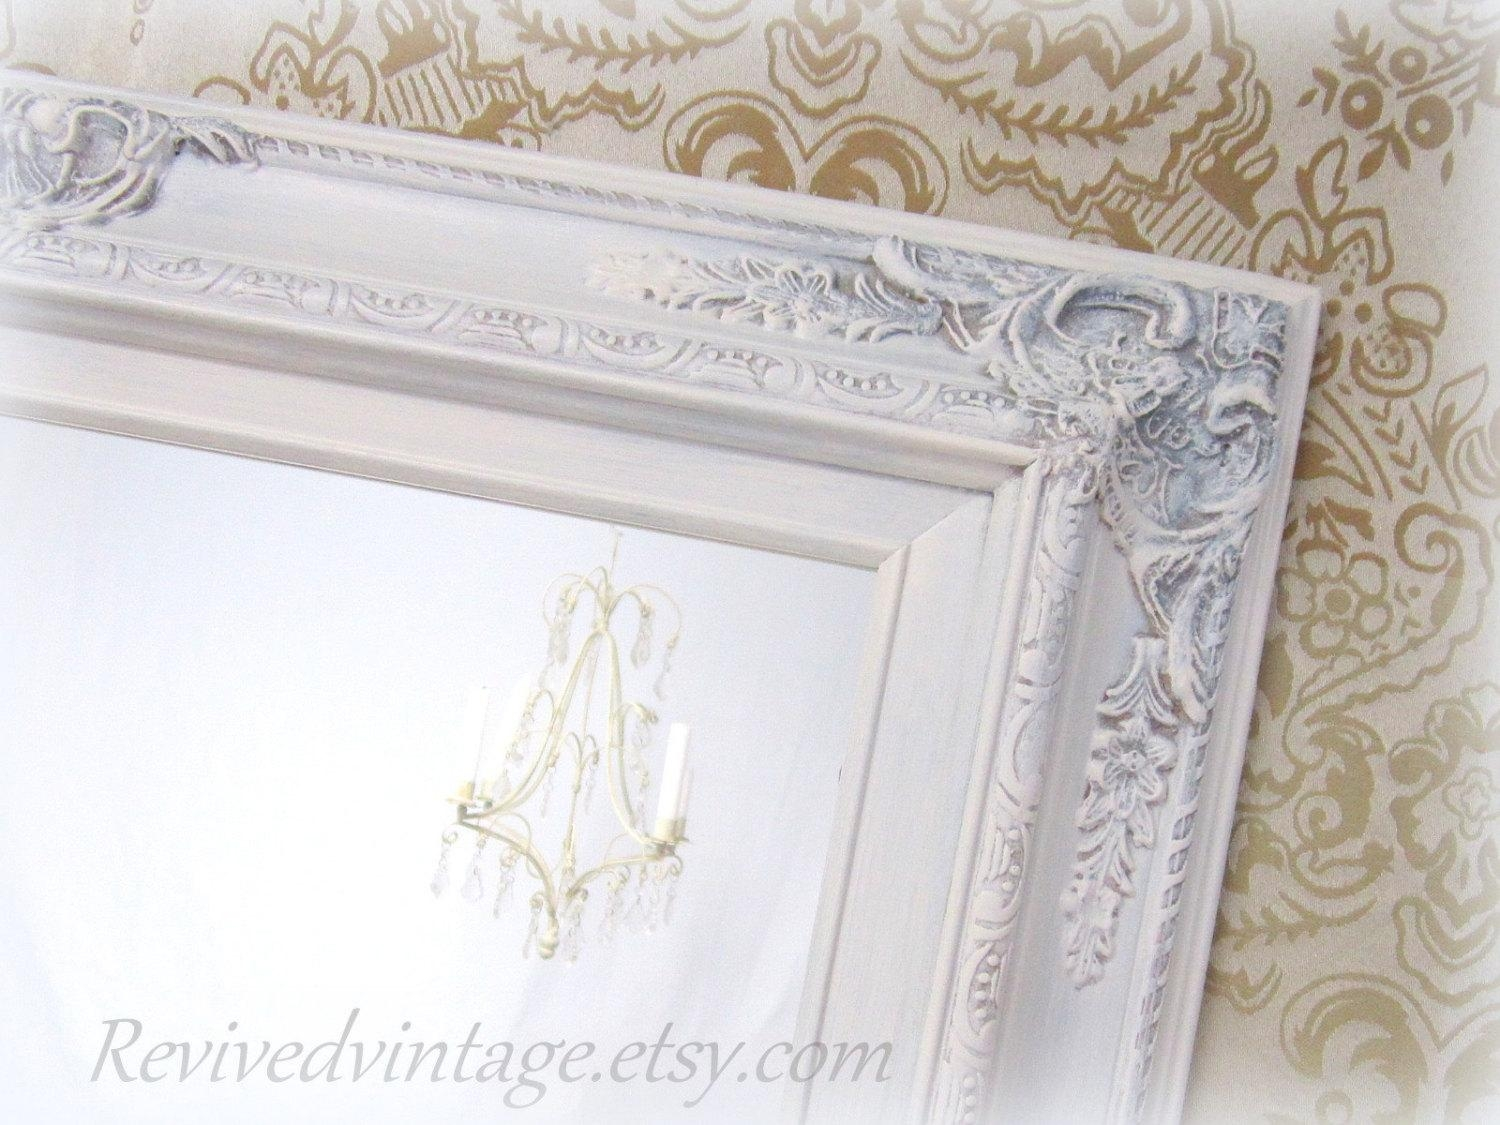 Shabby Chic Mirrors For Sale Baroque Framed Mirror Regarding Chic Mirrors (View 17 of 20)